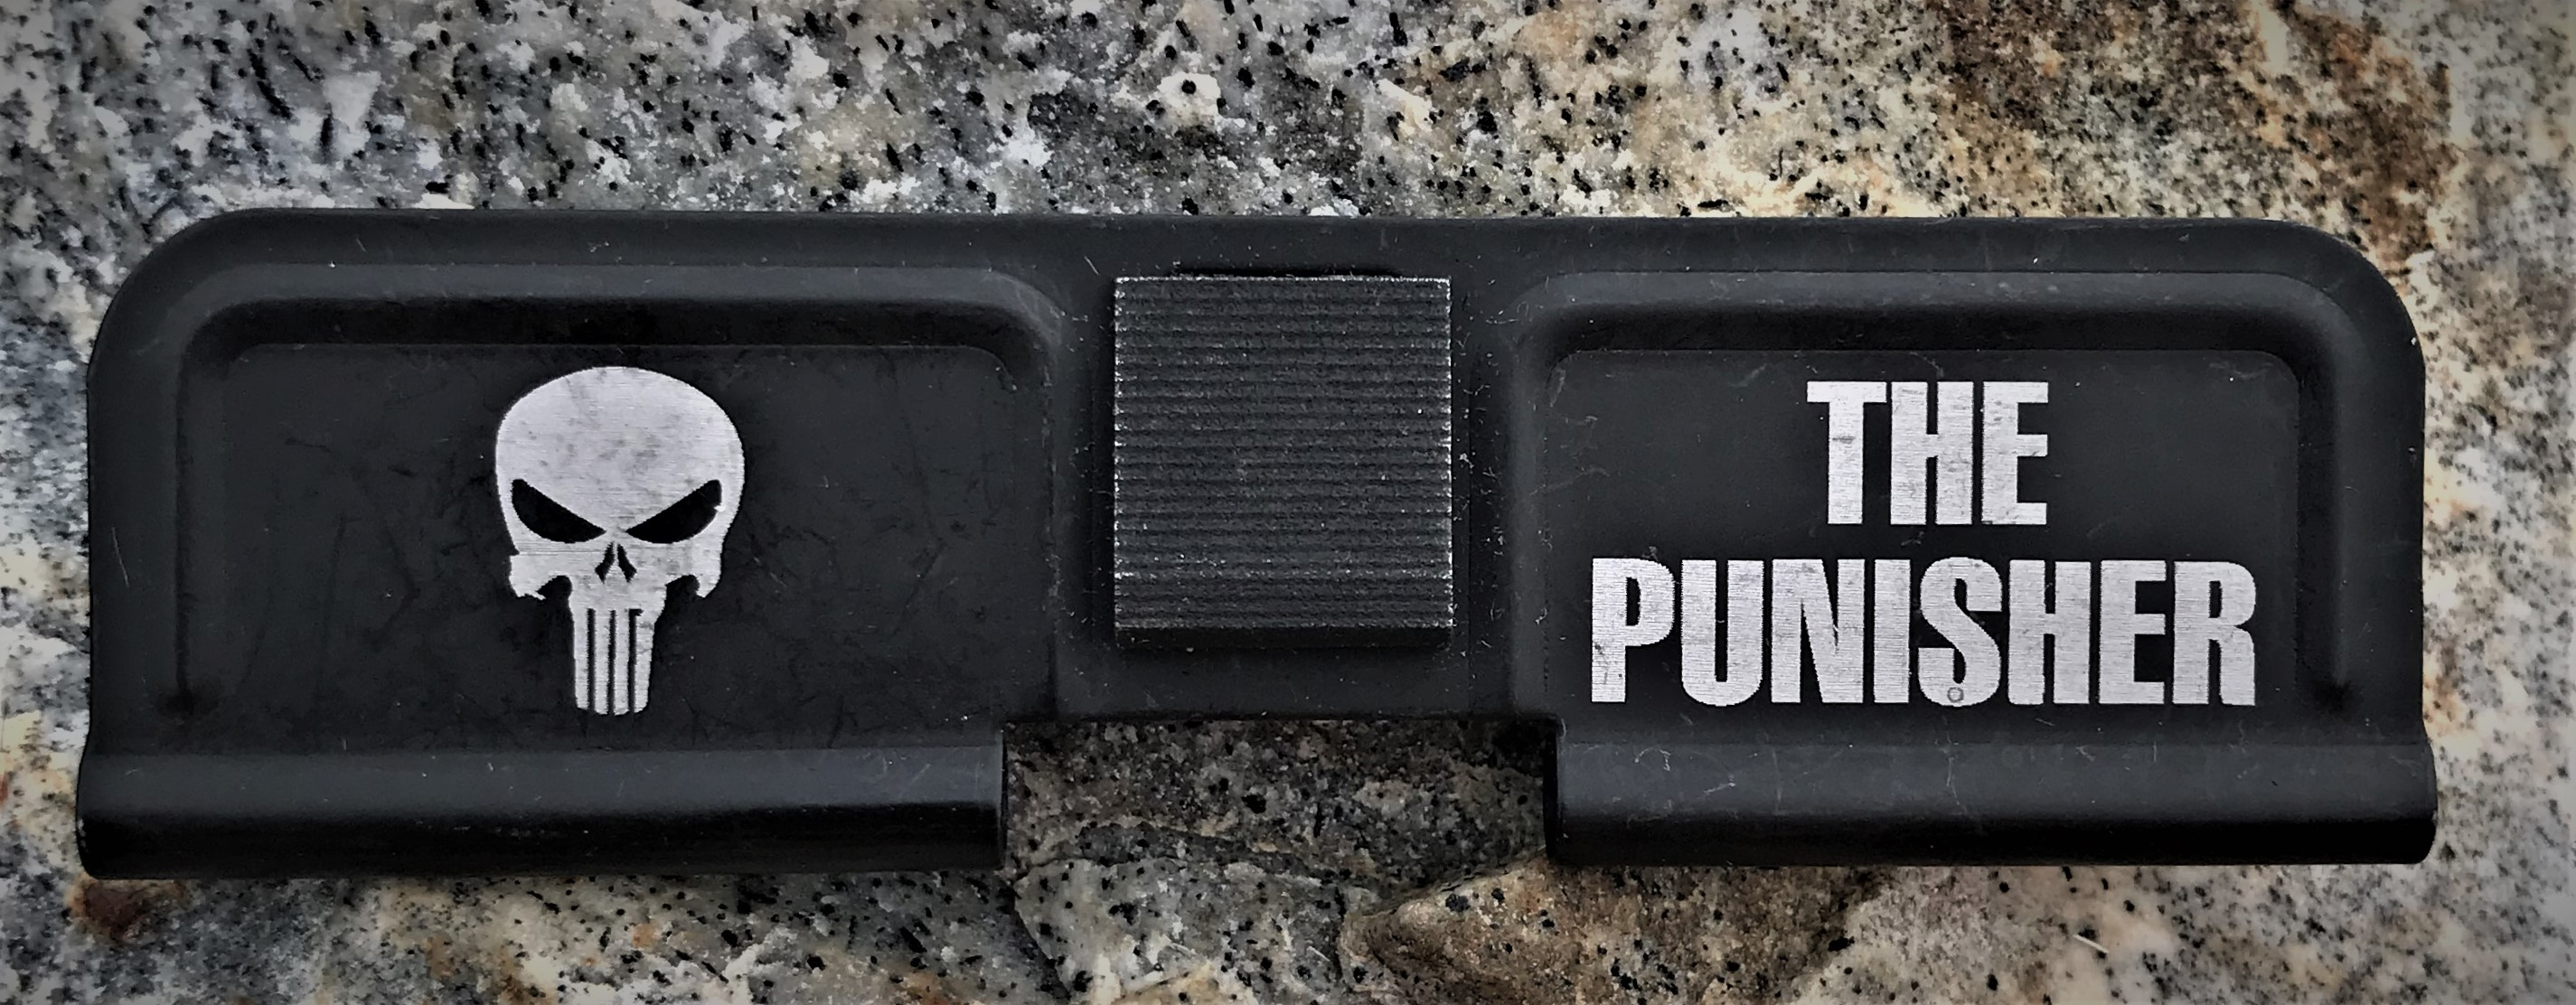 Custom AR 15 Ejection Port Cover The Punisher